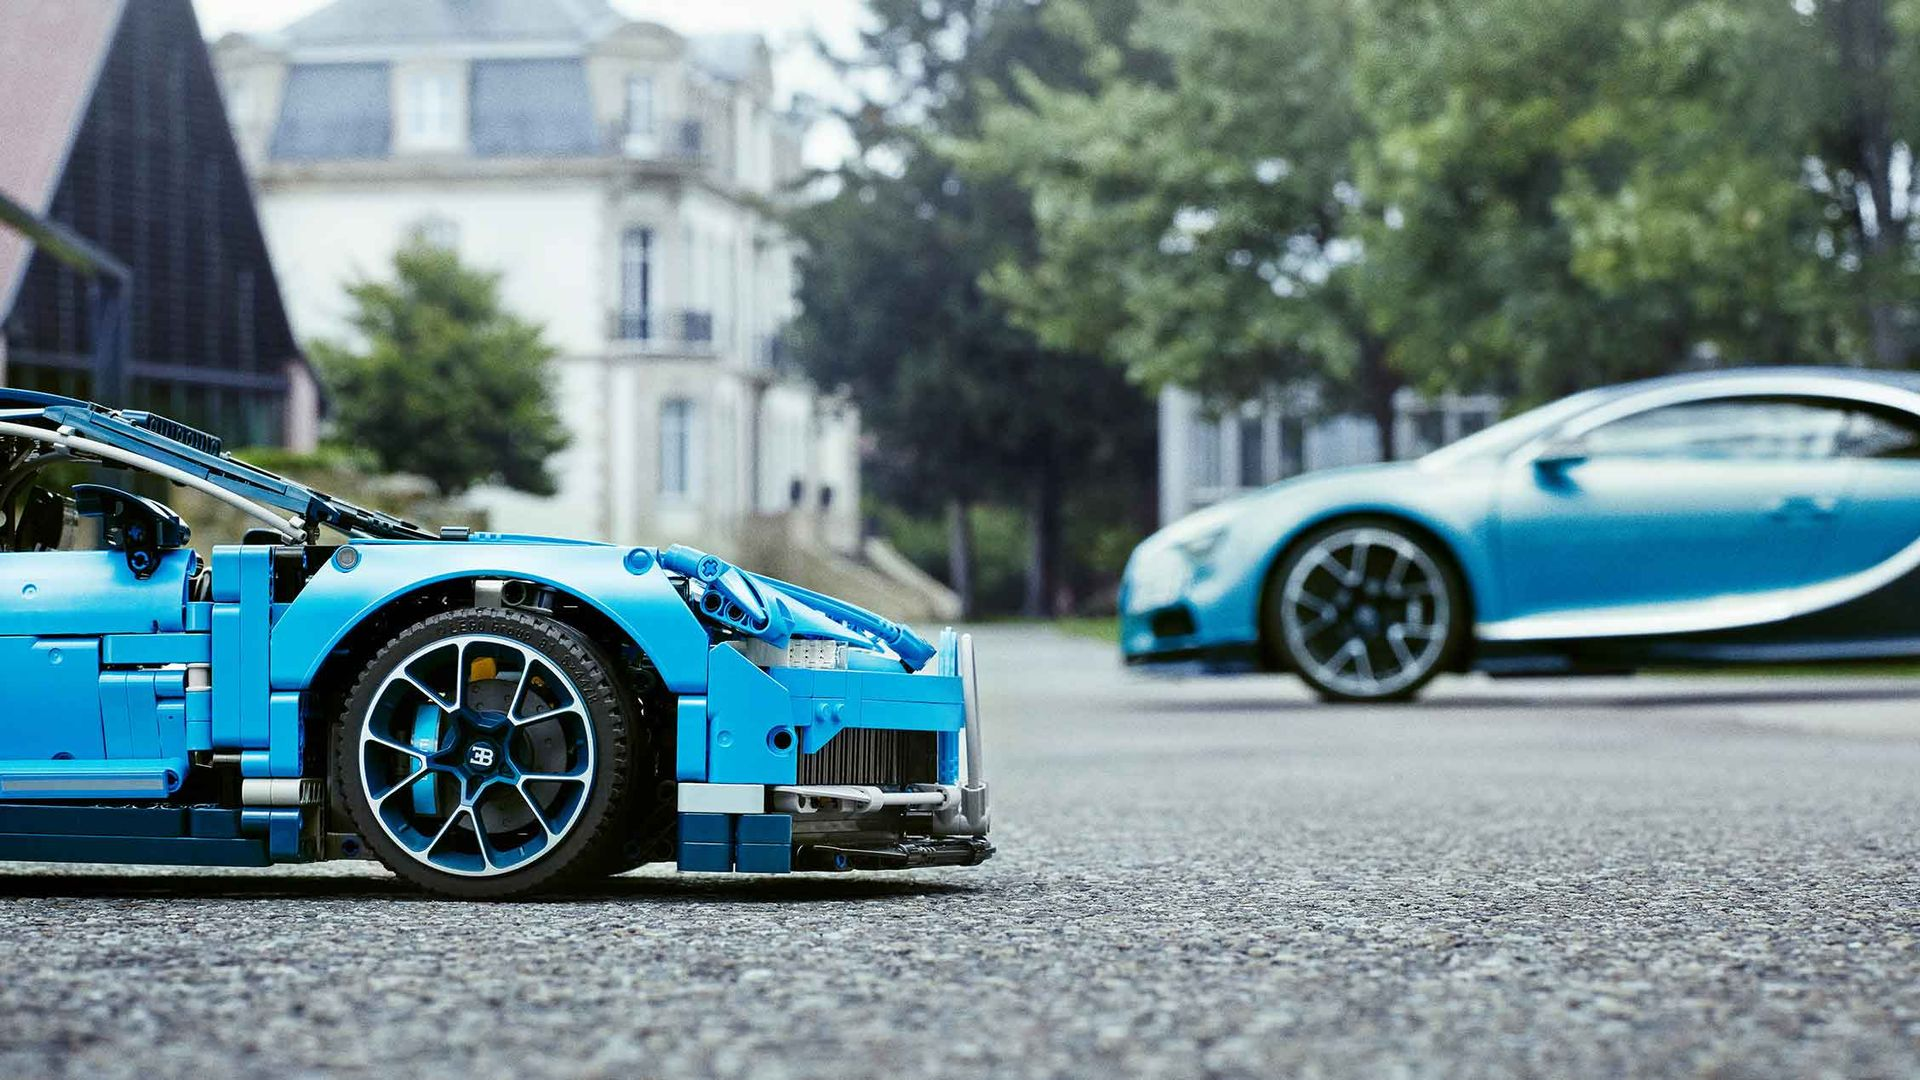 Lego Technic Bugatti Chiron The Facts And Tiny Figures